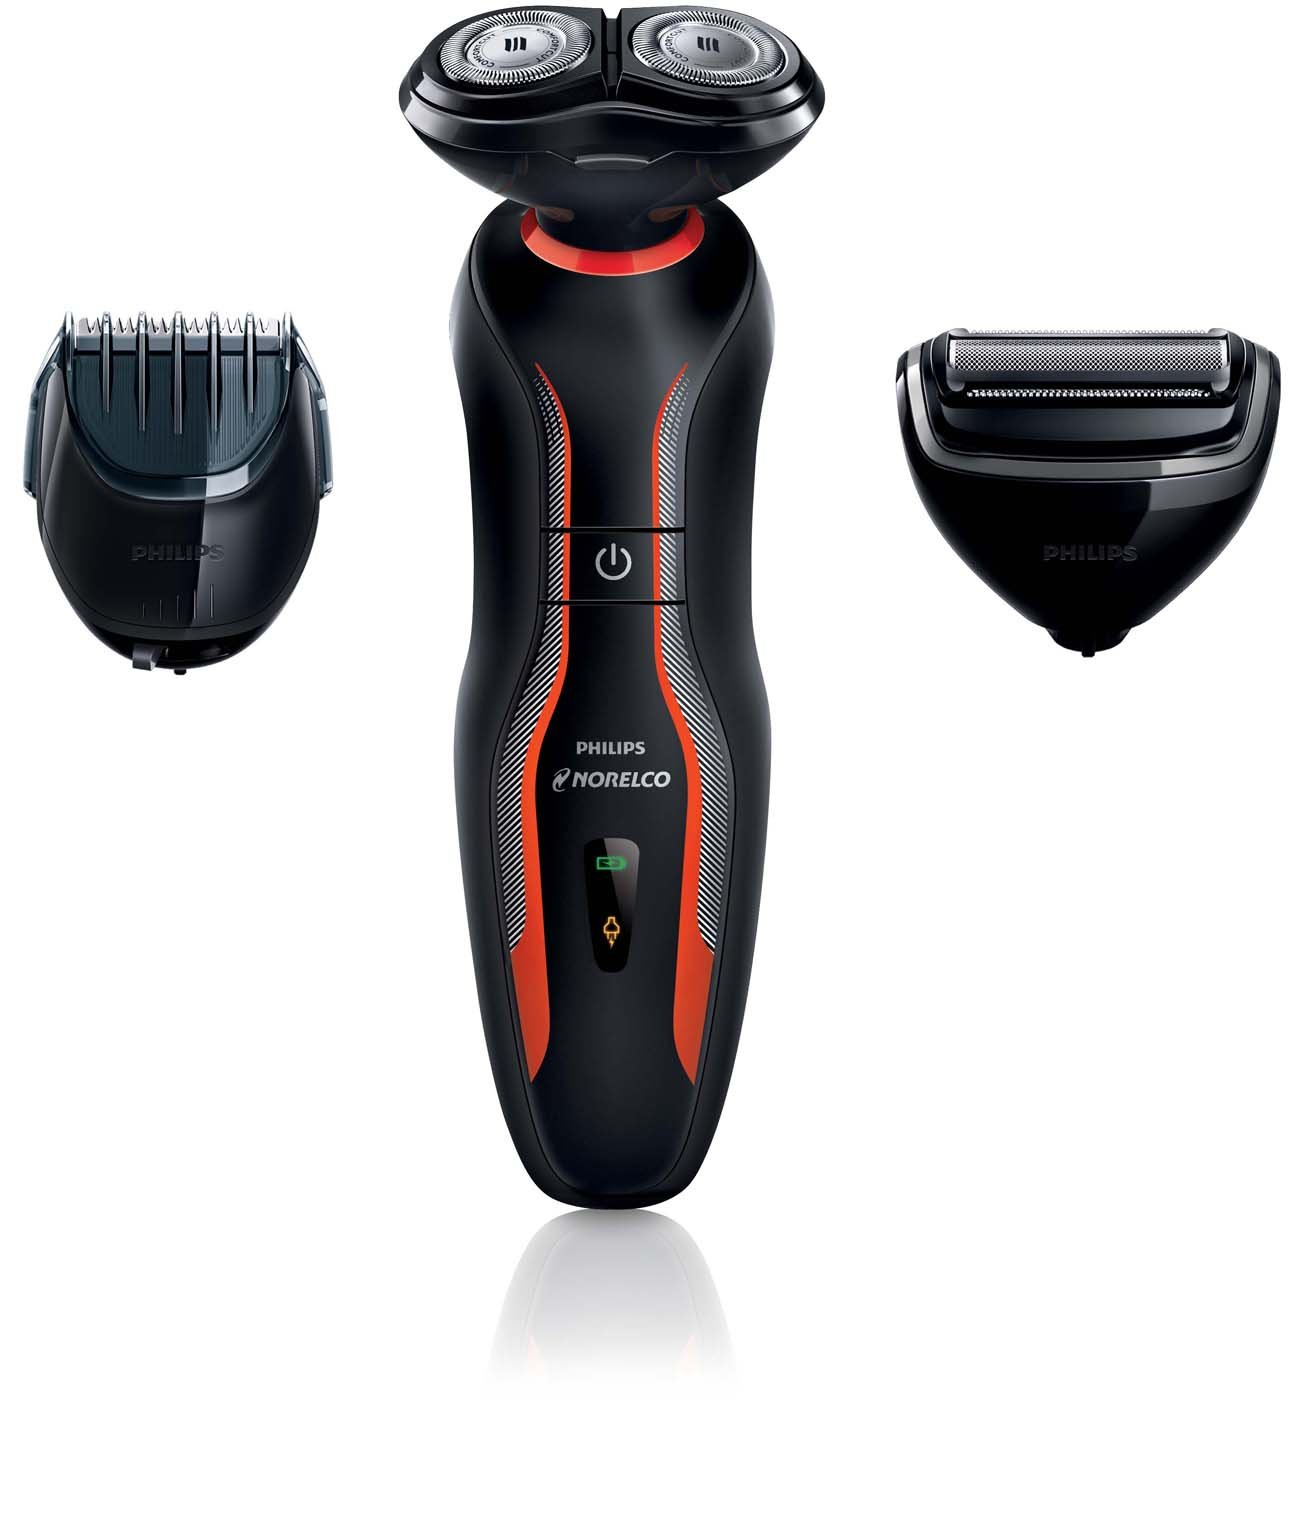 Philips Norelco Click and Style Shave Toolkit, Sony Music Special Pack